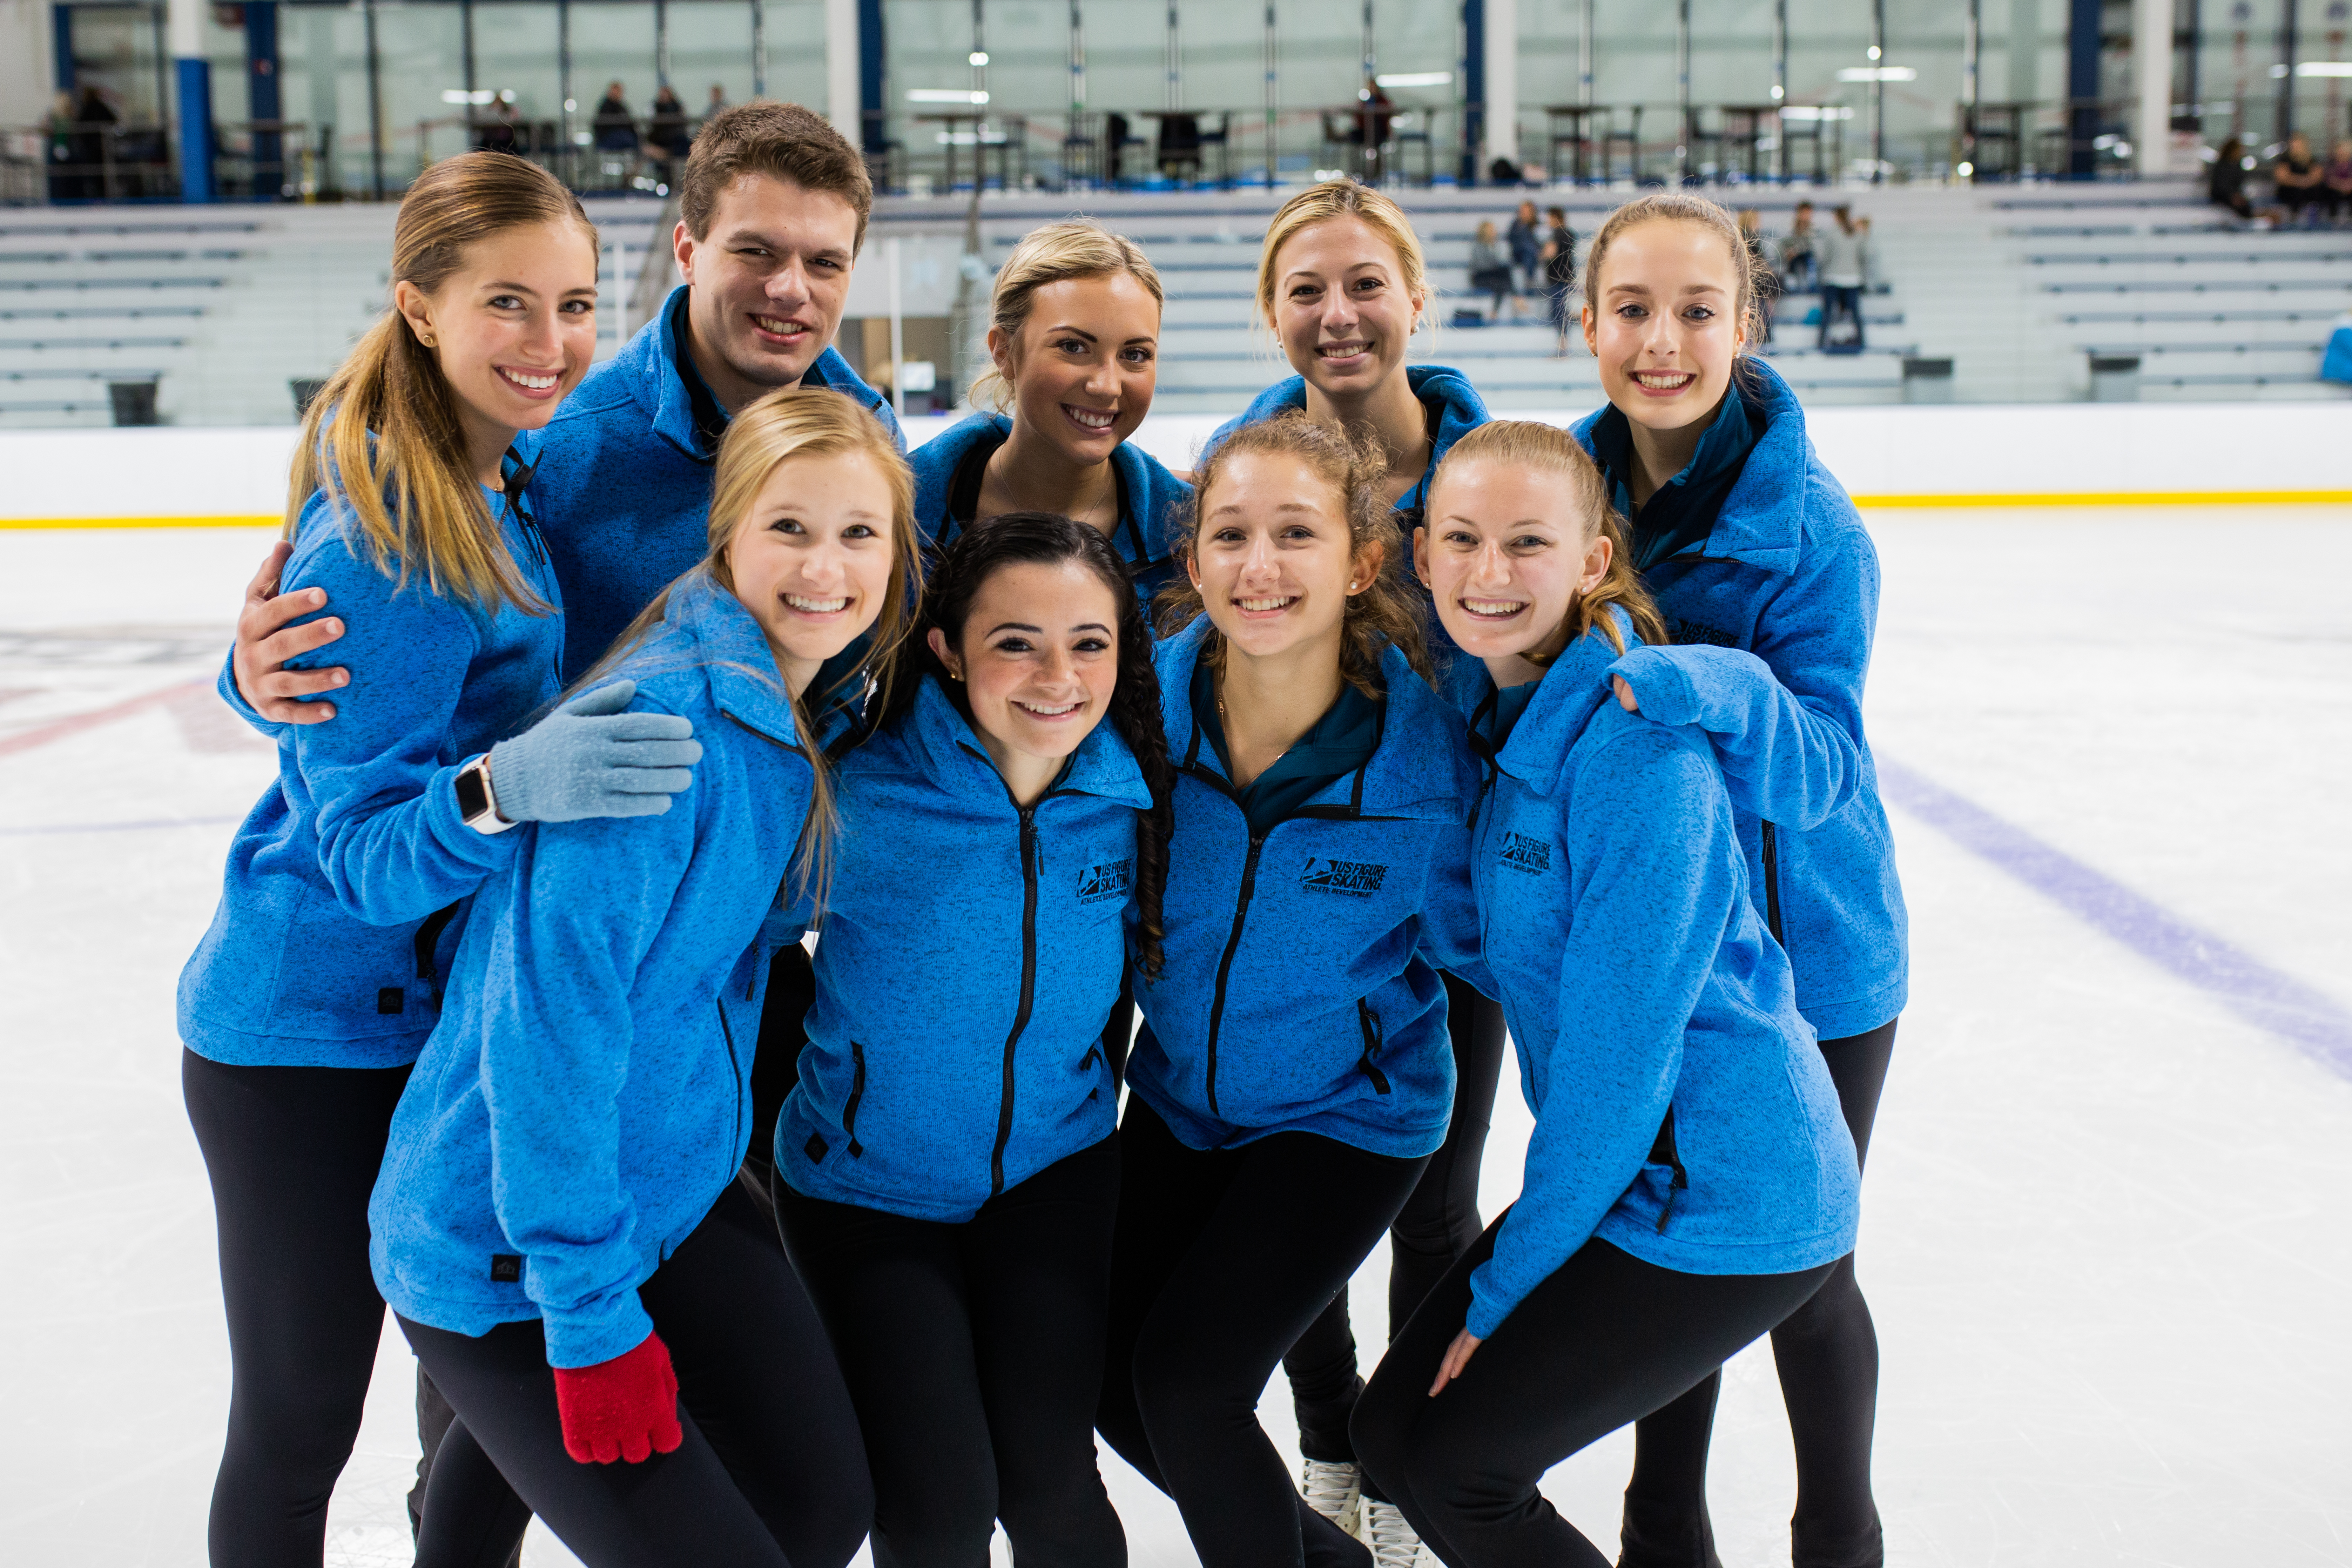 2019-20 DREAM Skaters pose for the camera on ice.